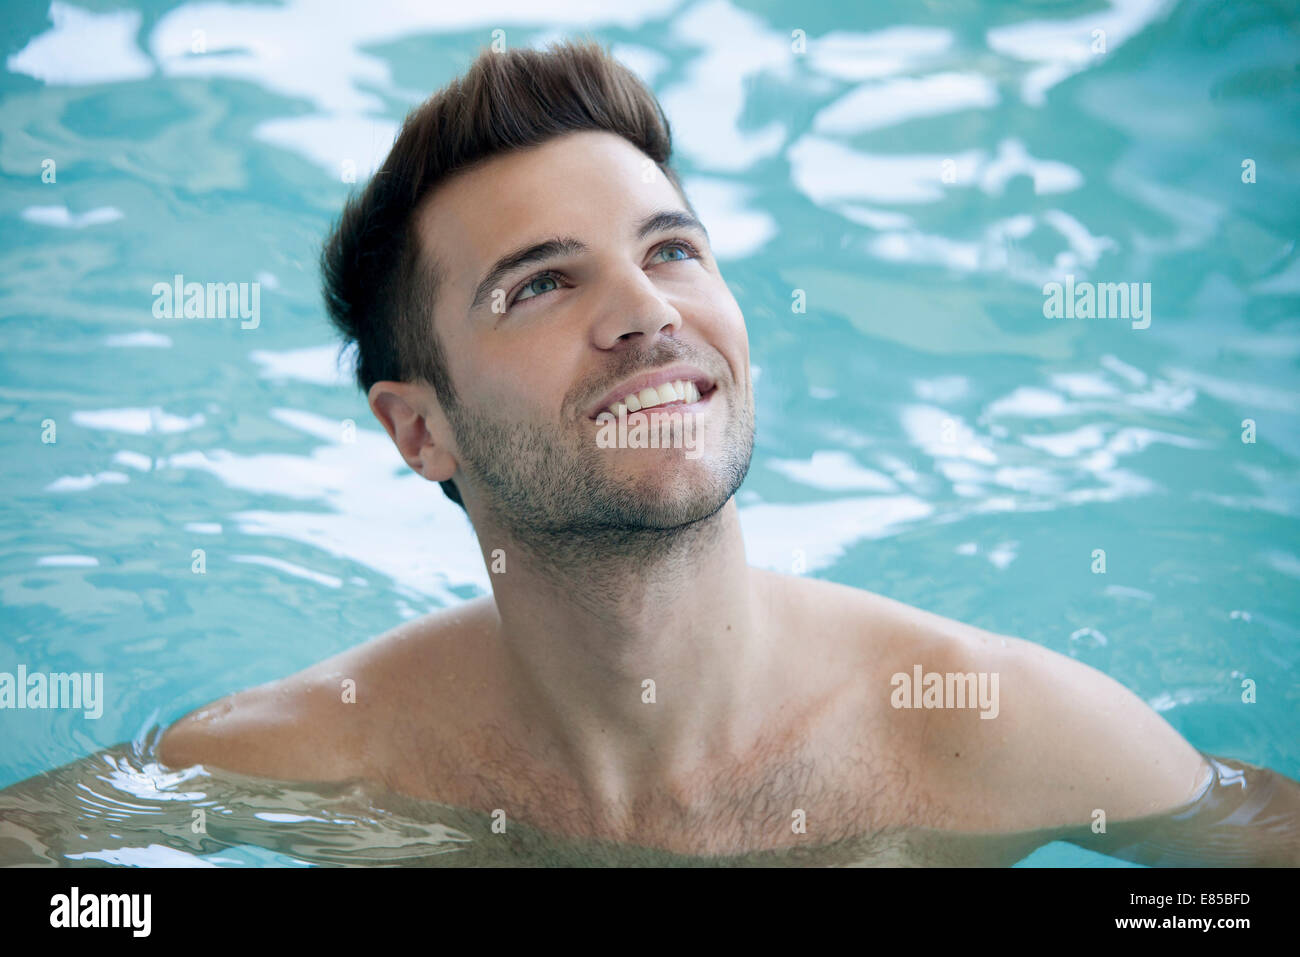 Man swimming in pool, portrait - Stock Image